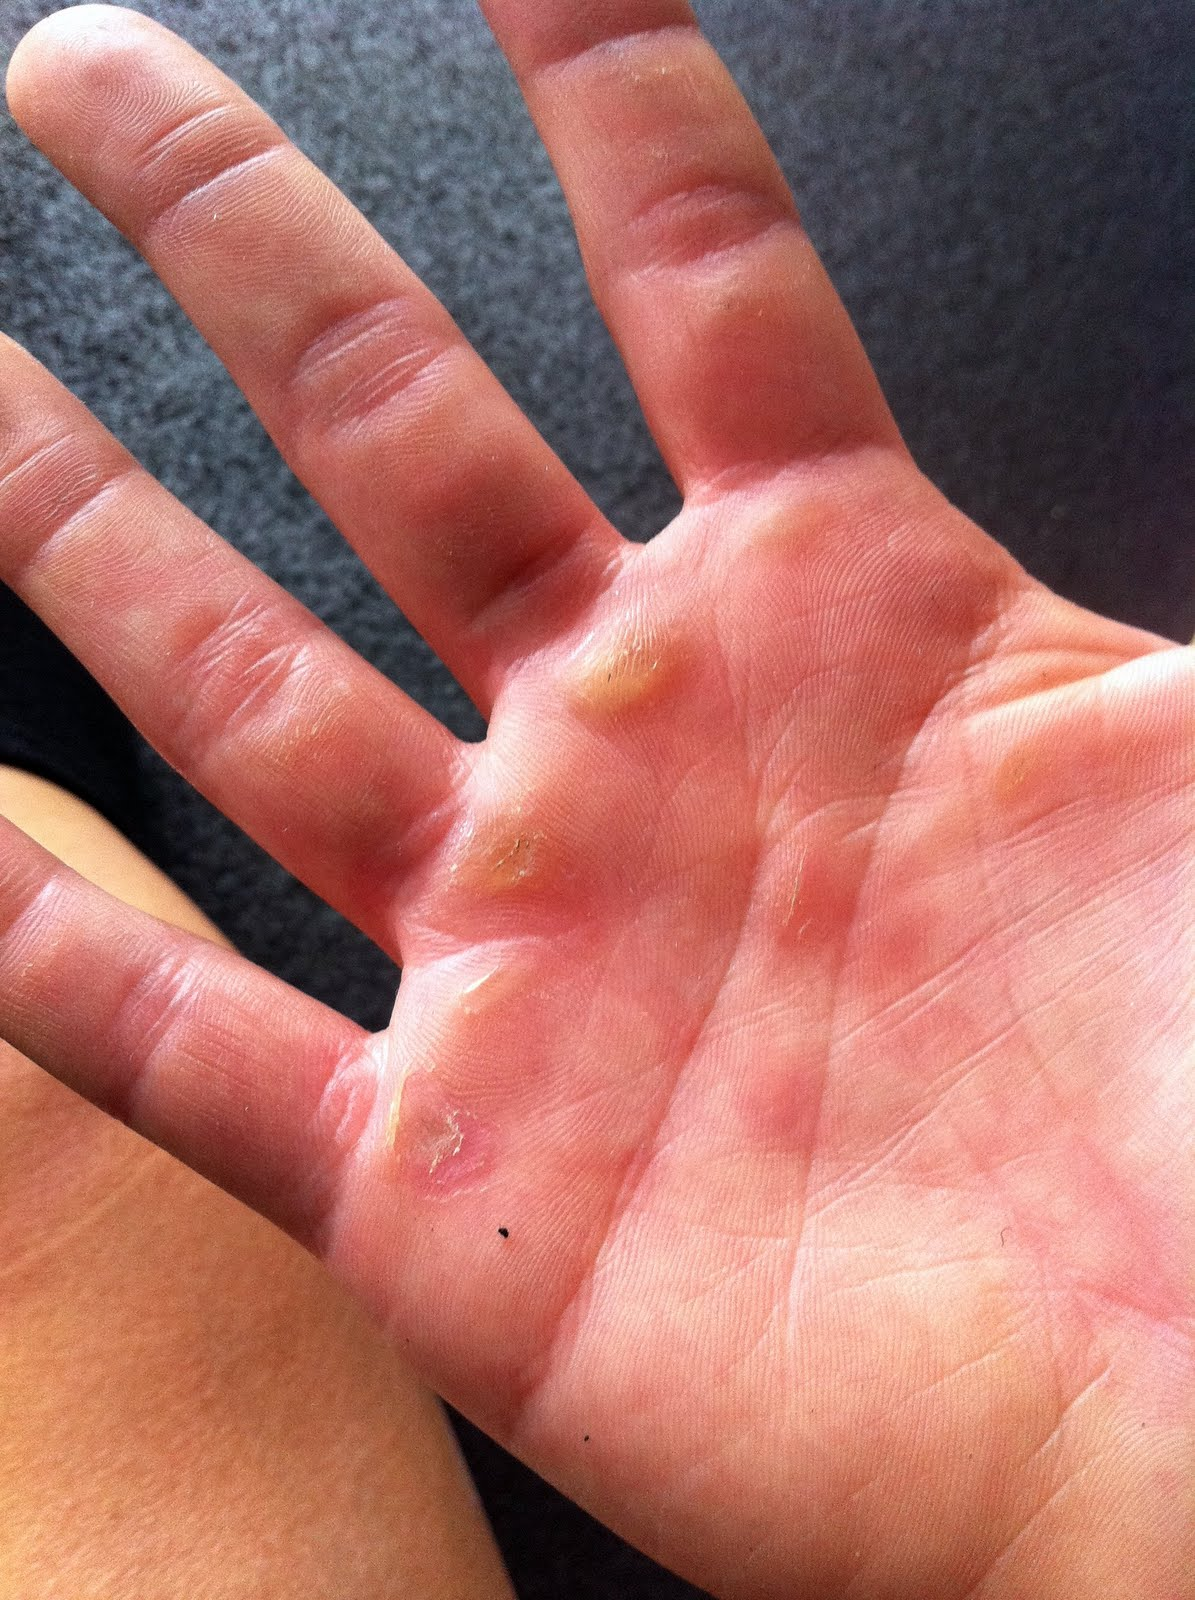 Slideshow: Blisters Causes and Treatment - WebMD